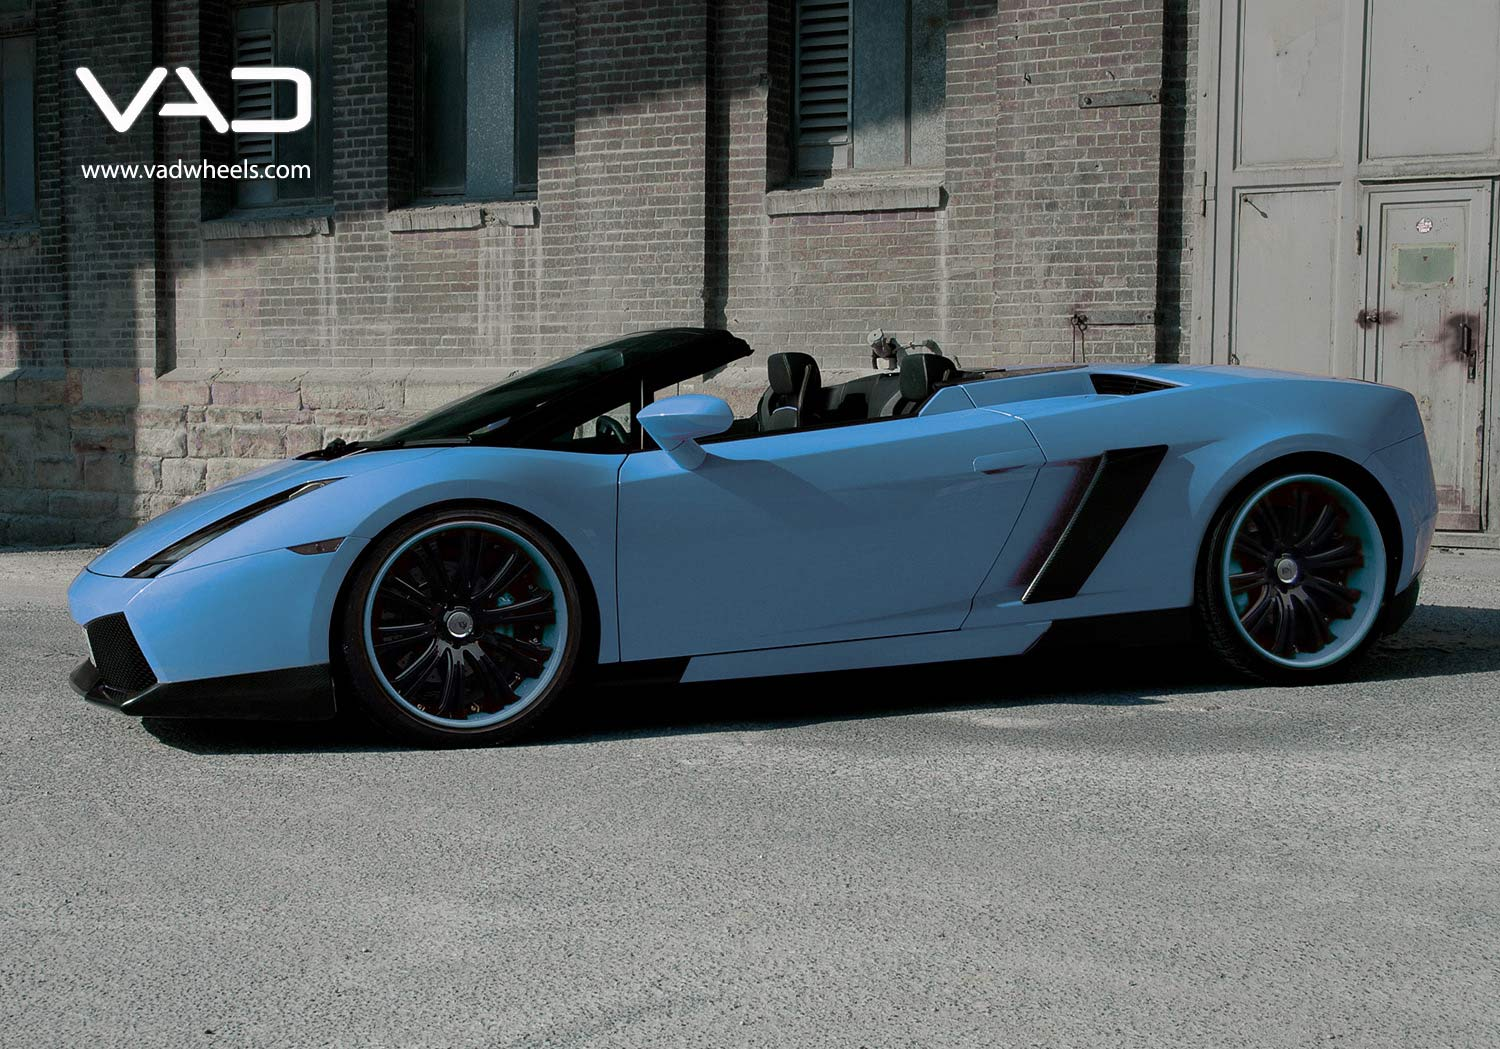 Lamborghini-Gallardo--Fitted-With-20''-Trafficstar-SFR-with-Coded-Lips